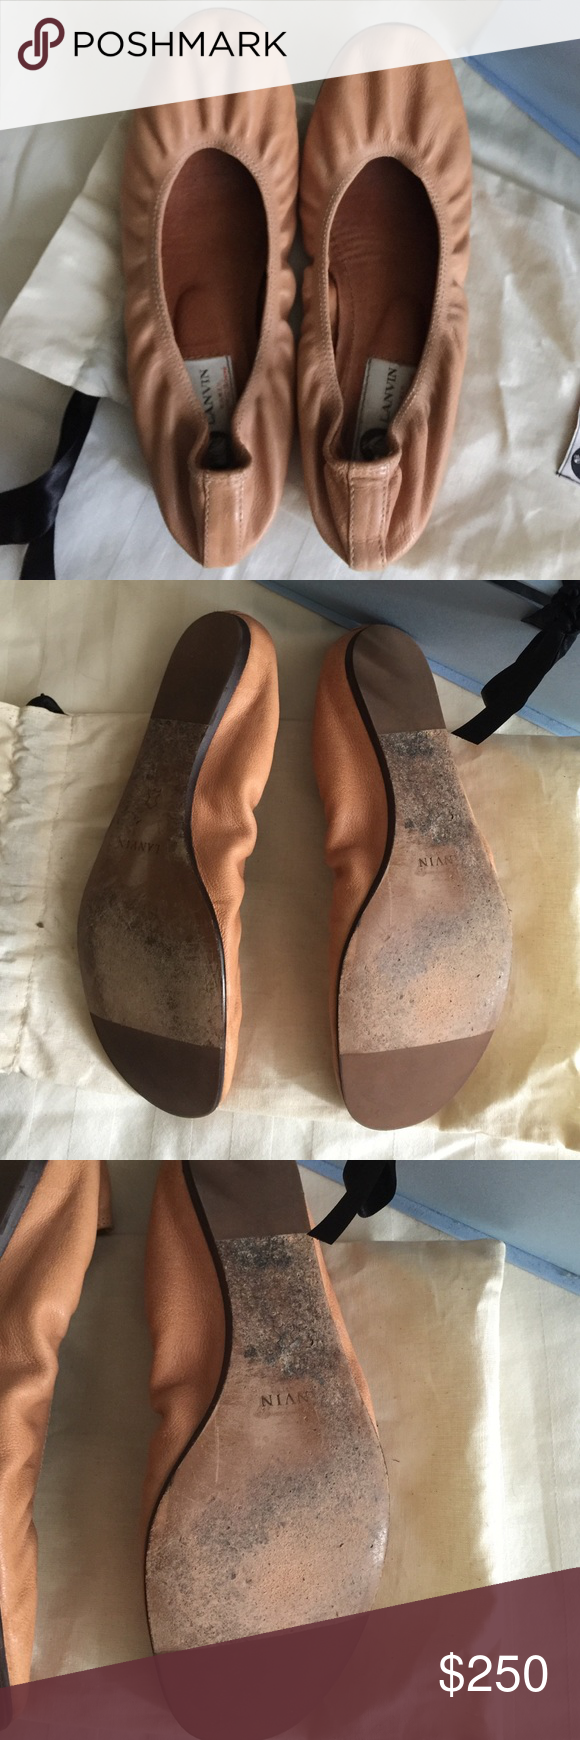 Lanvin Ballet Flats - nude/beige Lanvin ballet flats!  Like new condition!  Worn 3x Lanvin Shoes Flats & Loafers